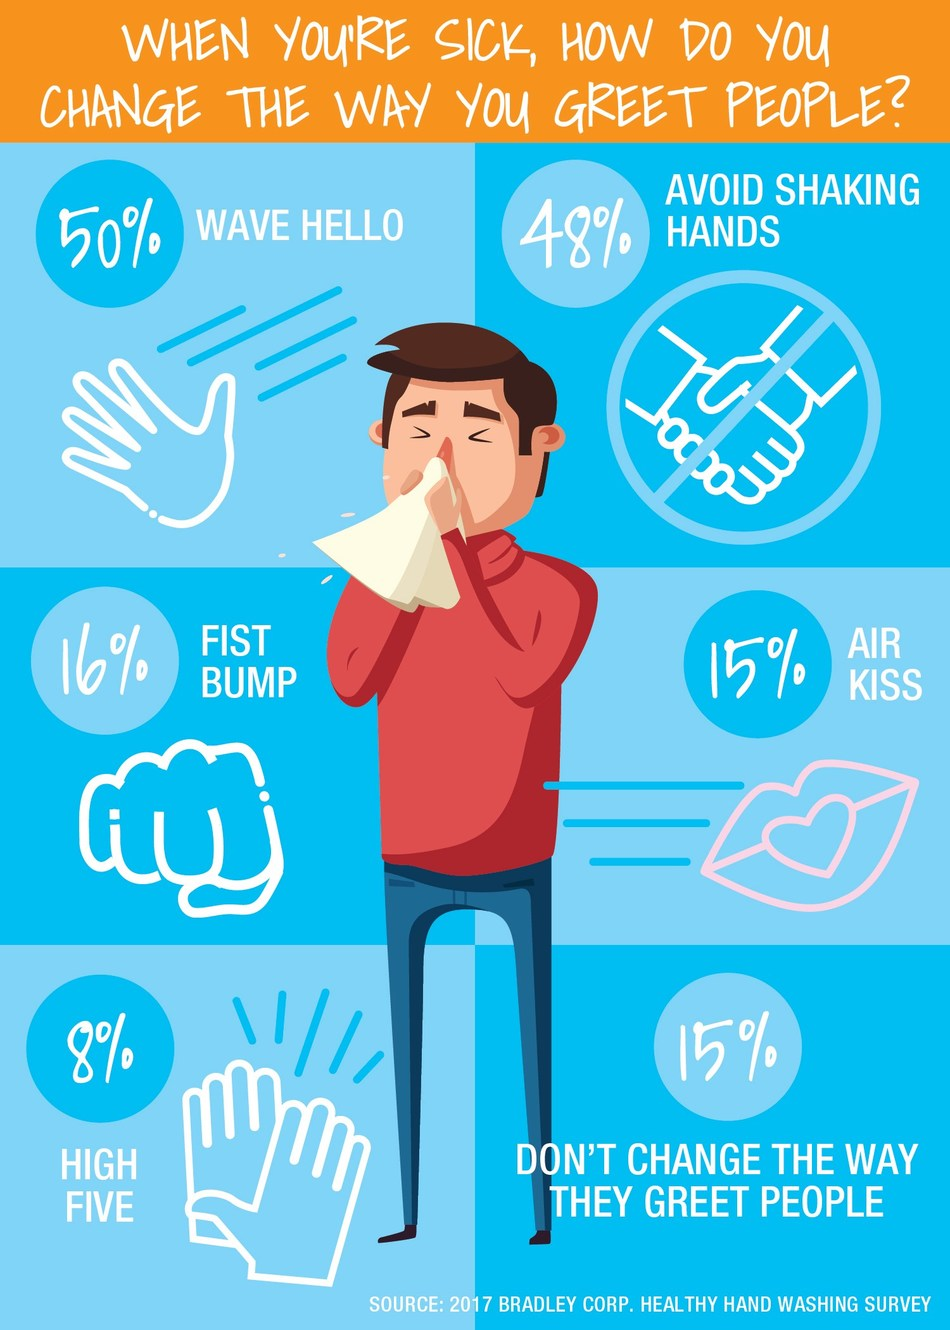 The Healthy Hand Washing Survey reveals that Americans change the way they greet people when they're sick. Some simply wave hello, while others use a fist bump or air kiss as their greeting.